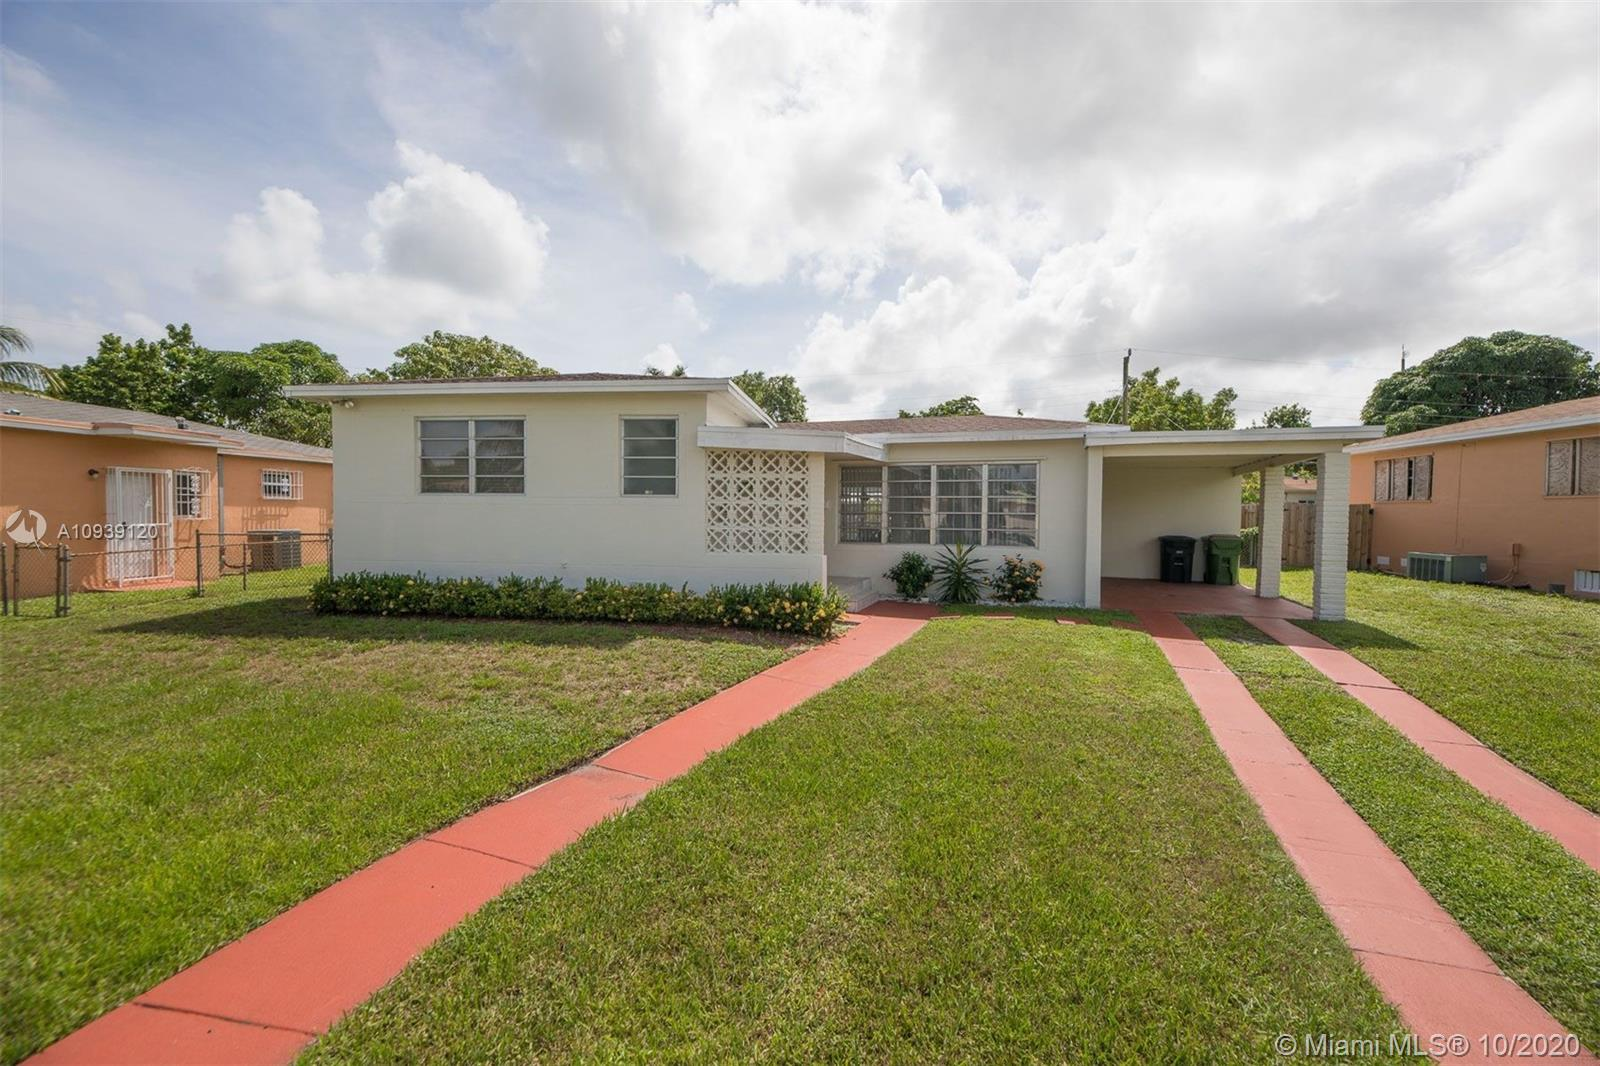 Details for 130 121st Ter, North Miami, FL 33161